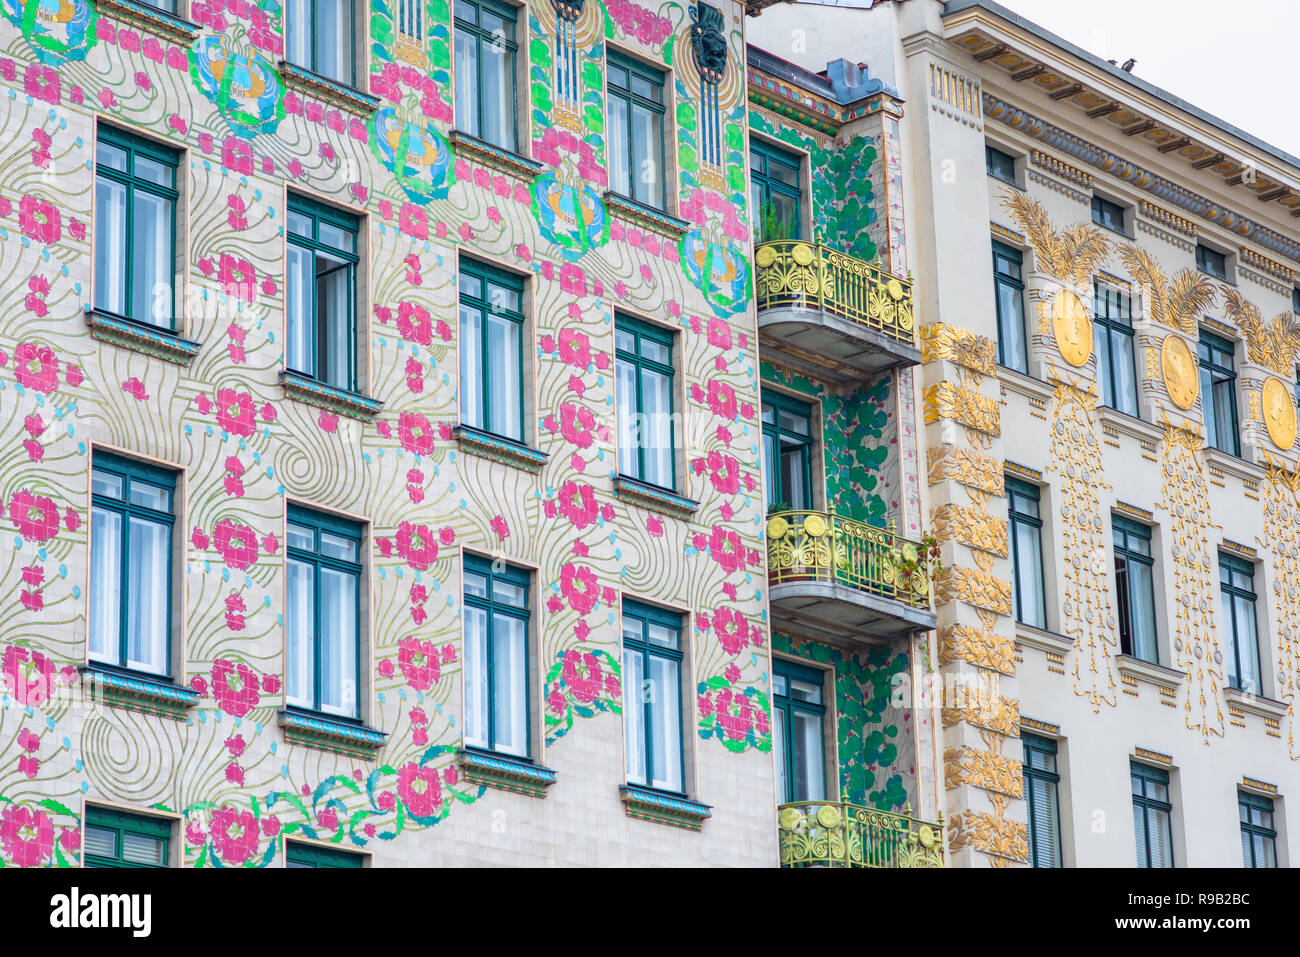 Art nouveau Vienna, view of the Majolika-Haus (left) and Otto Wagner Haus - both prime examples of the Jugendstil art-nouveau style in architecture. - Stock Image